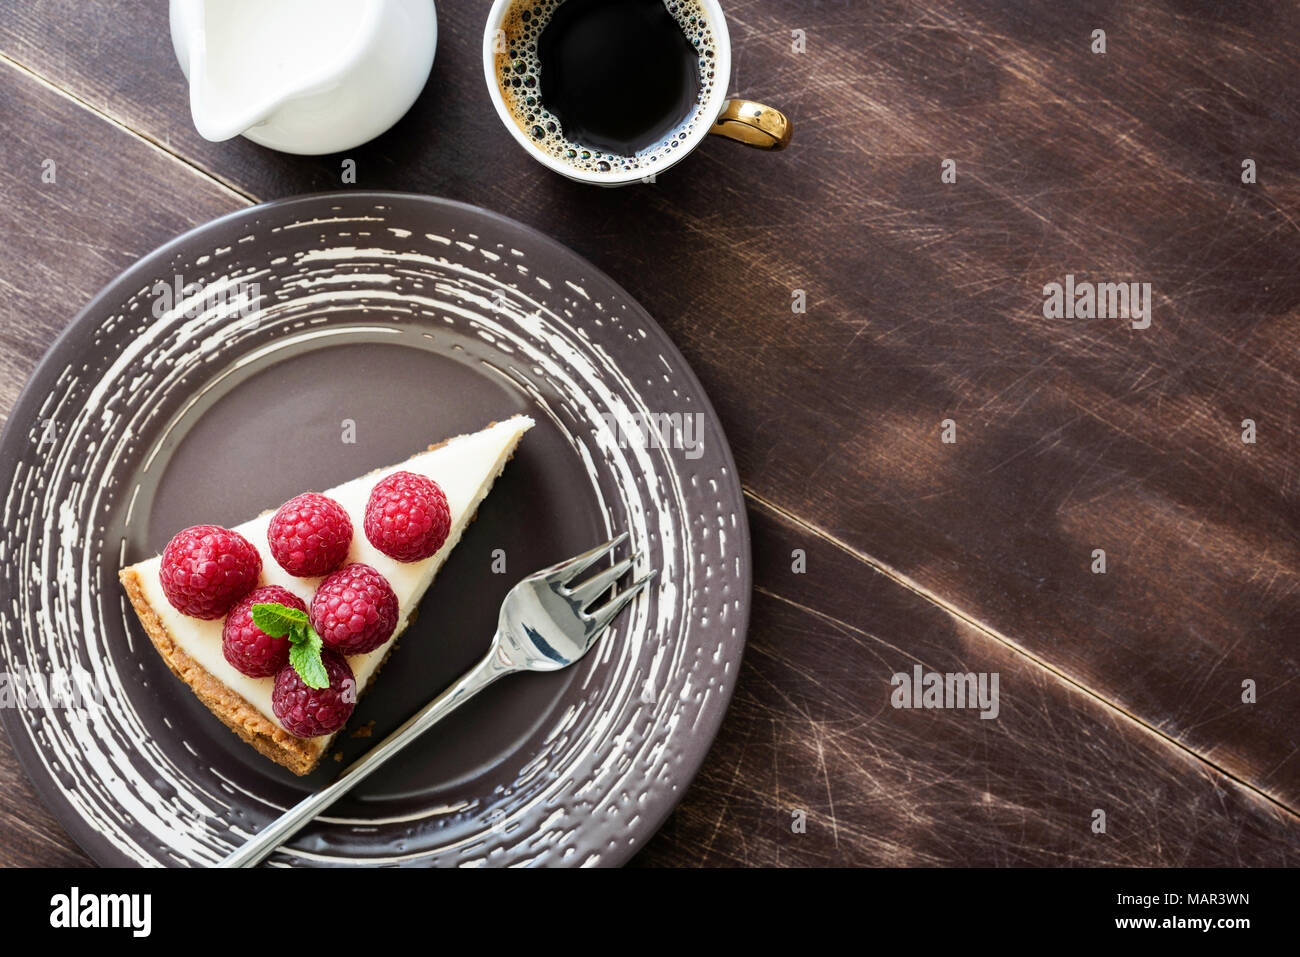 Top view cheesecake with raspberries, cup of coffee and cream on wood. Copy space for text - Stock Image